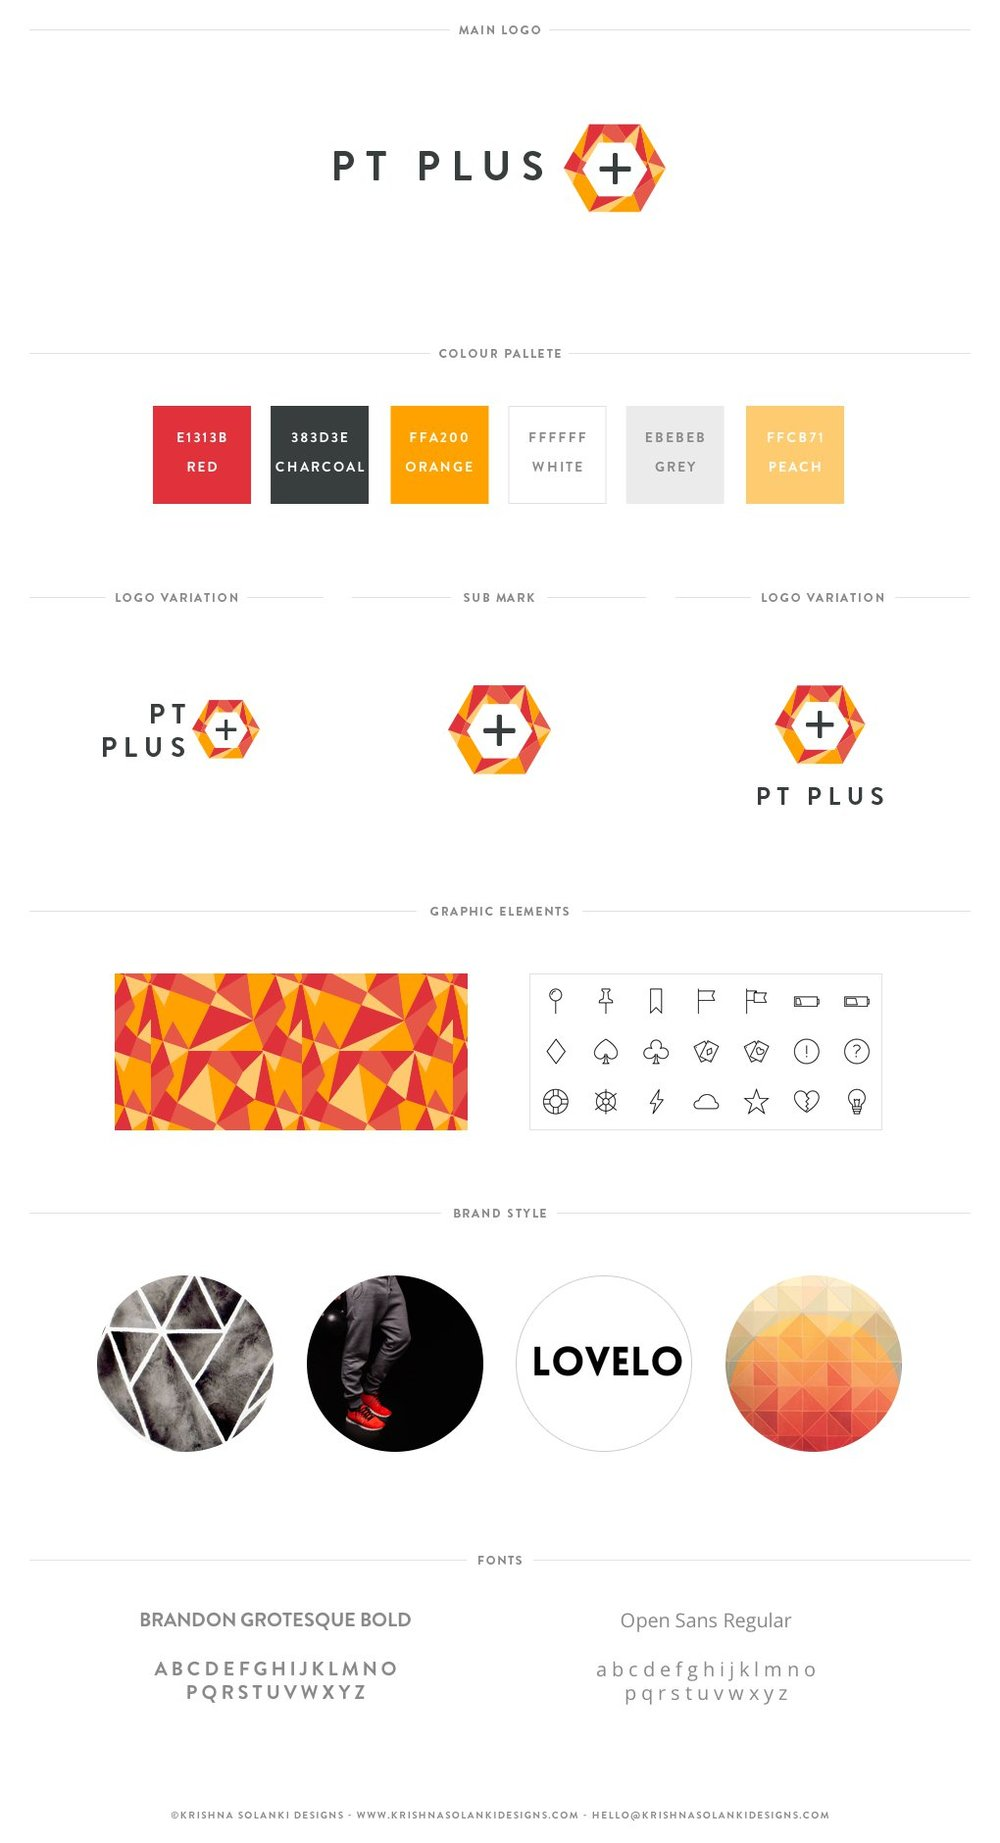 Brand board for PT PLUS